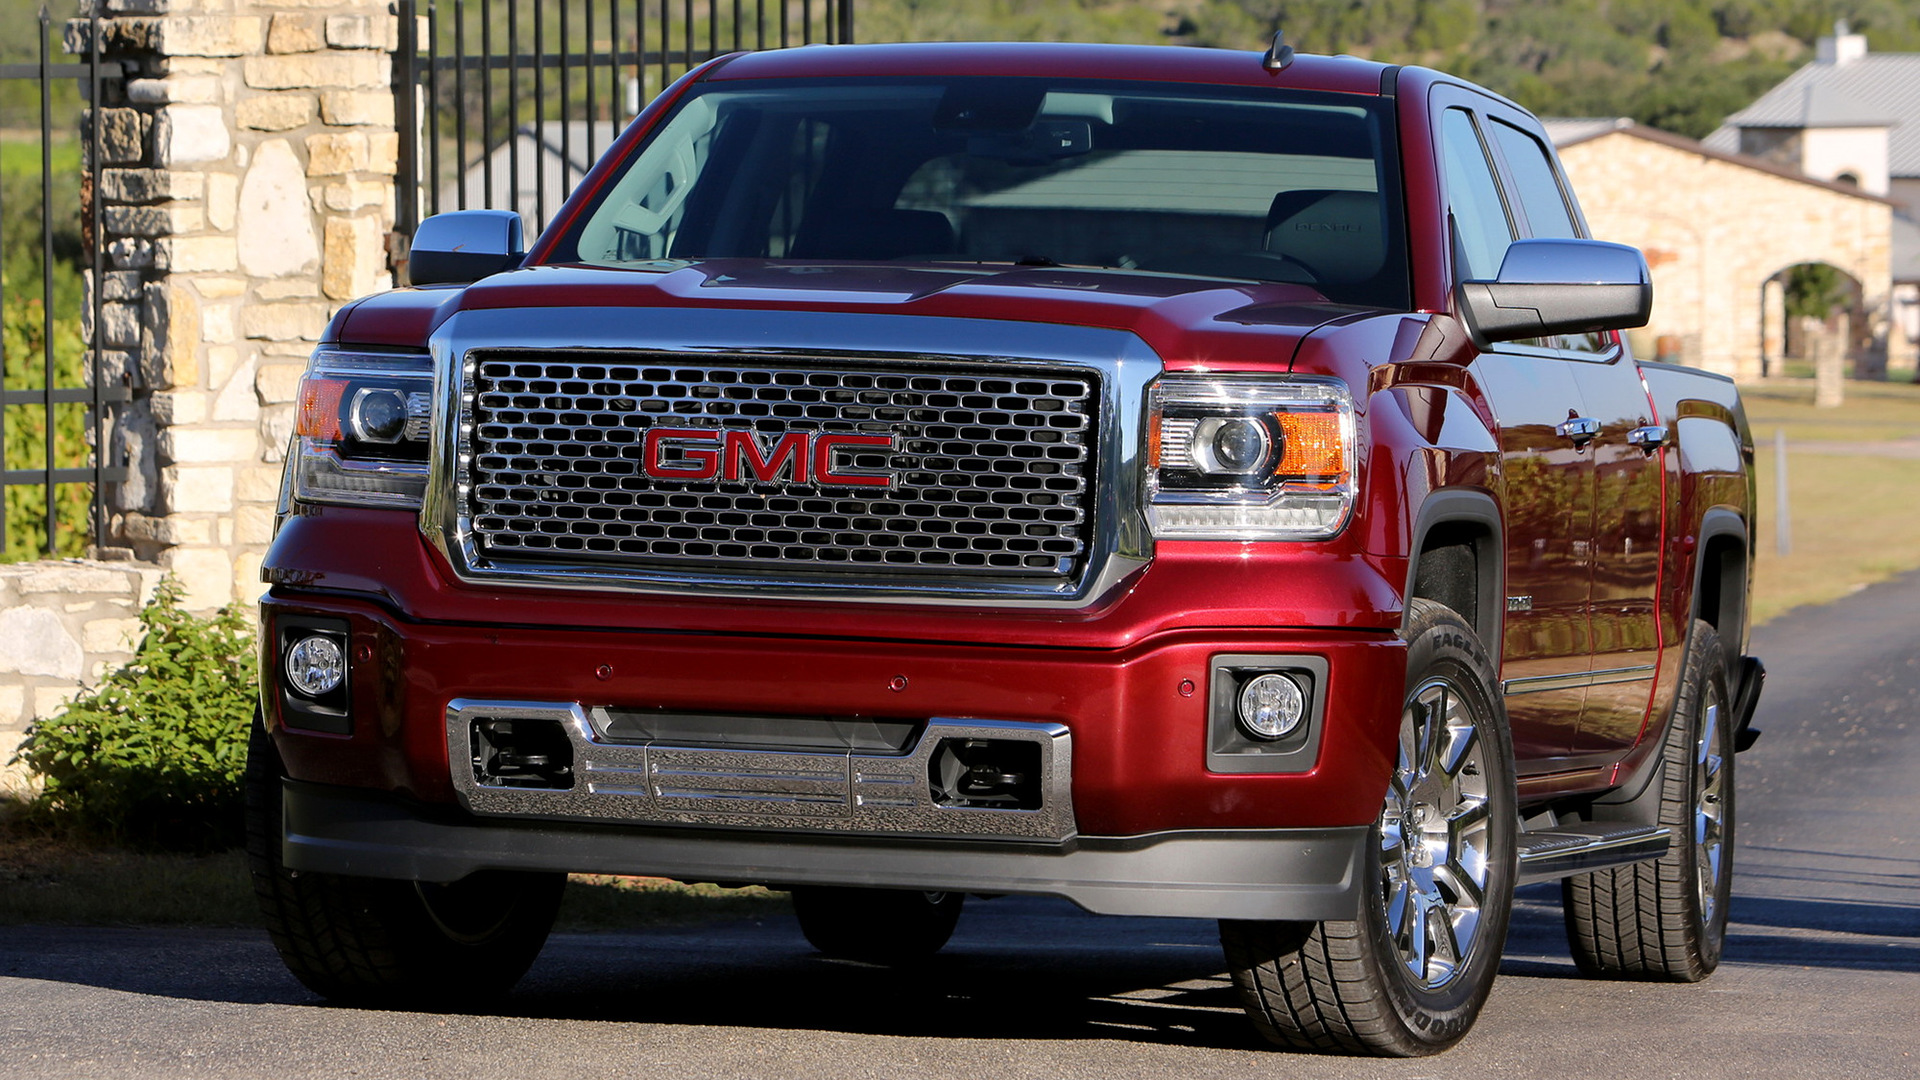 GMC Sierra Denali 1500 Crew Cab (2014) Wallpapers and HD ...